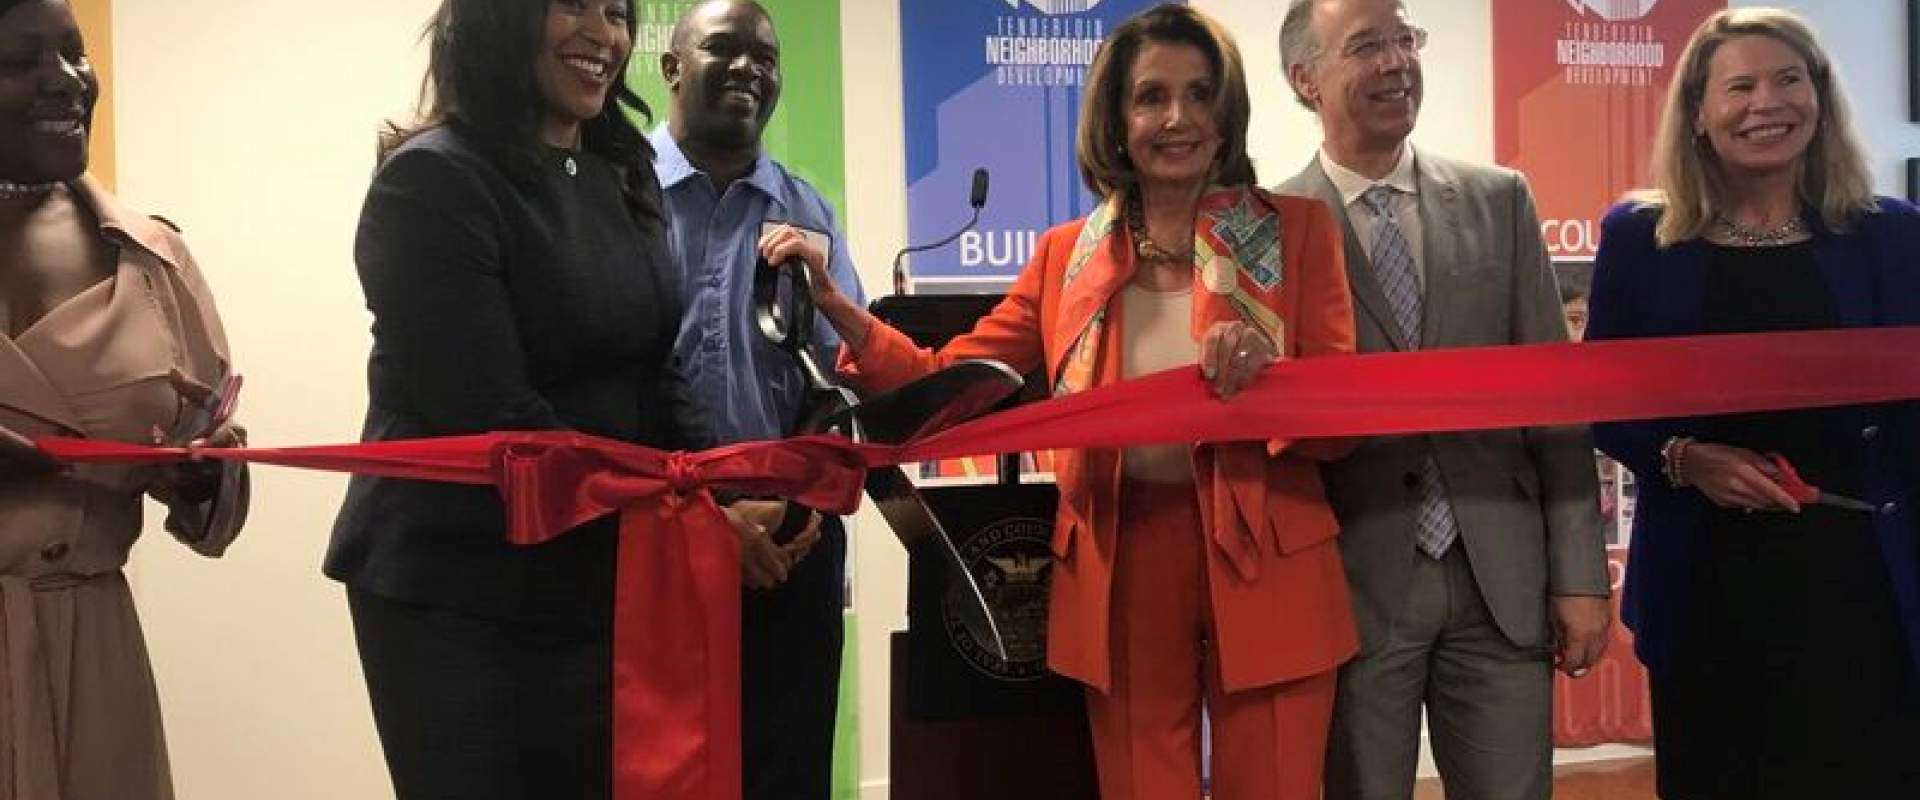 Congresswoman Pelosi joins Mayor London Breed and residents for the grand re-opening of Sala Burton Manor in the Tenderloin. The renovation of this 89-unit public housing site for seniors and persons with disabilities under the management of community-bas